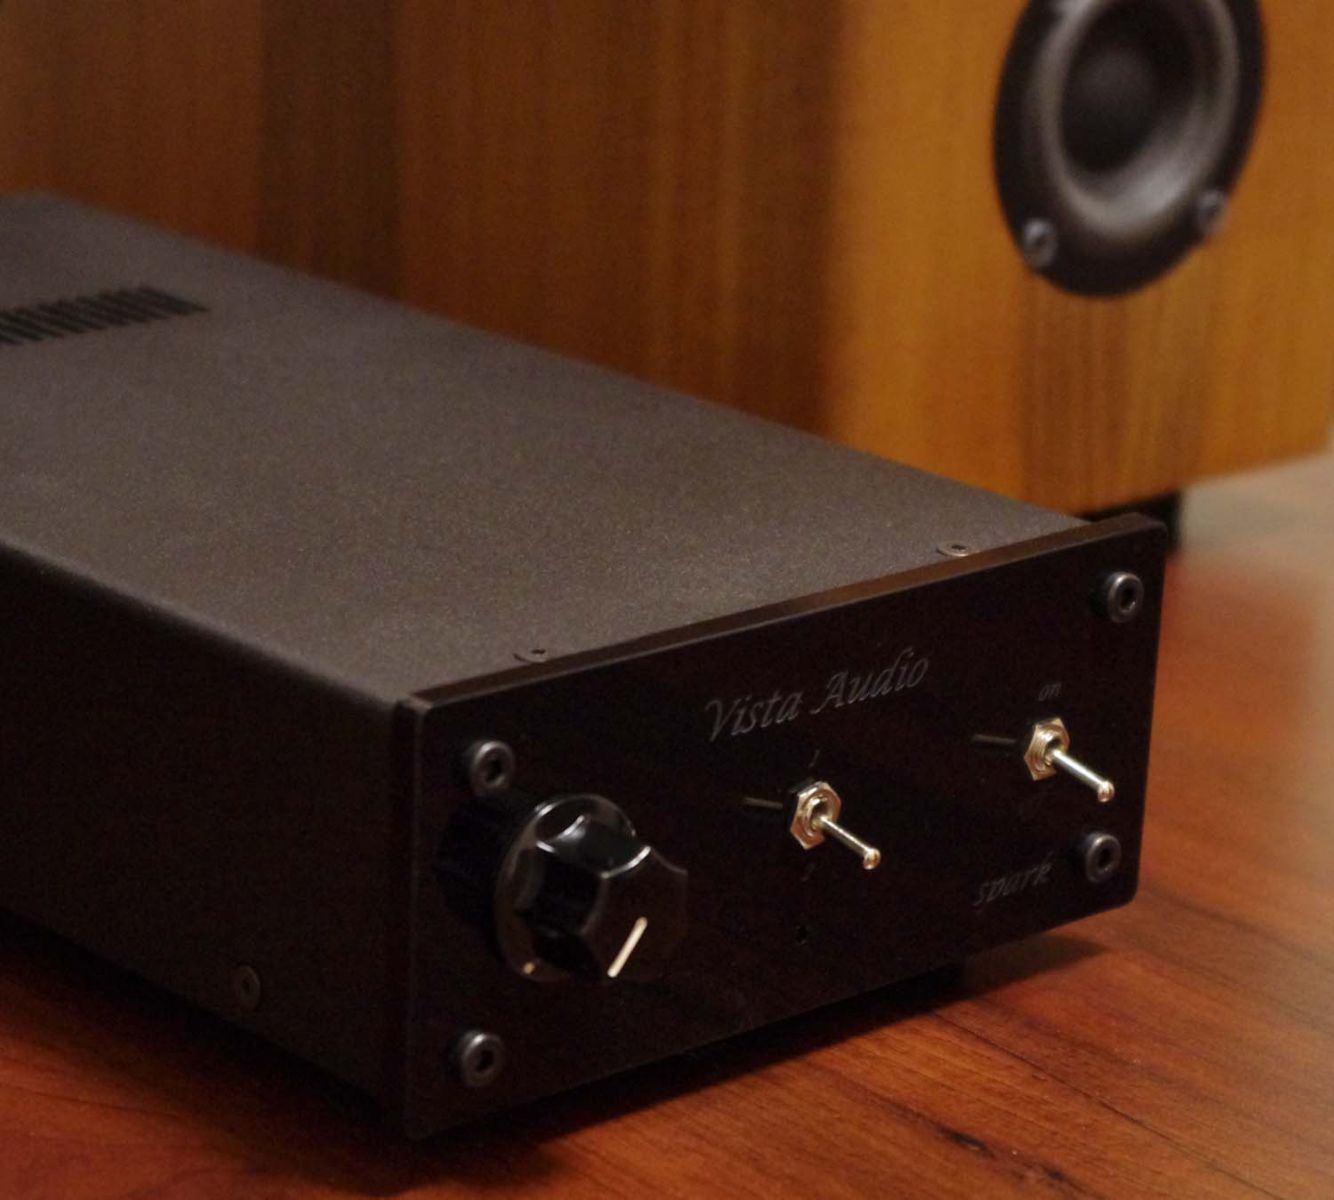 Ampli Vista Audio Spark chat